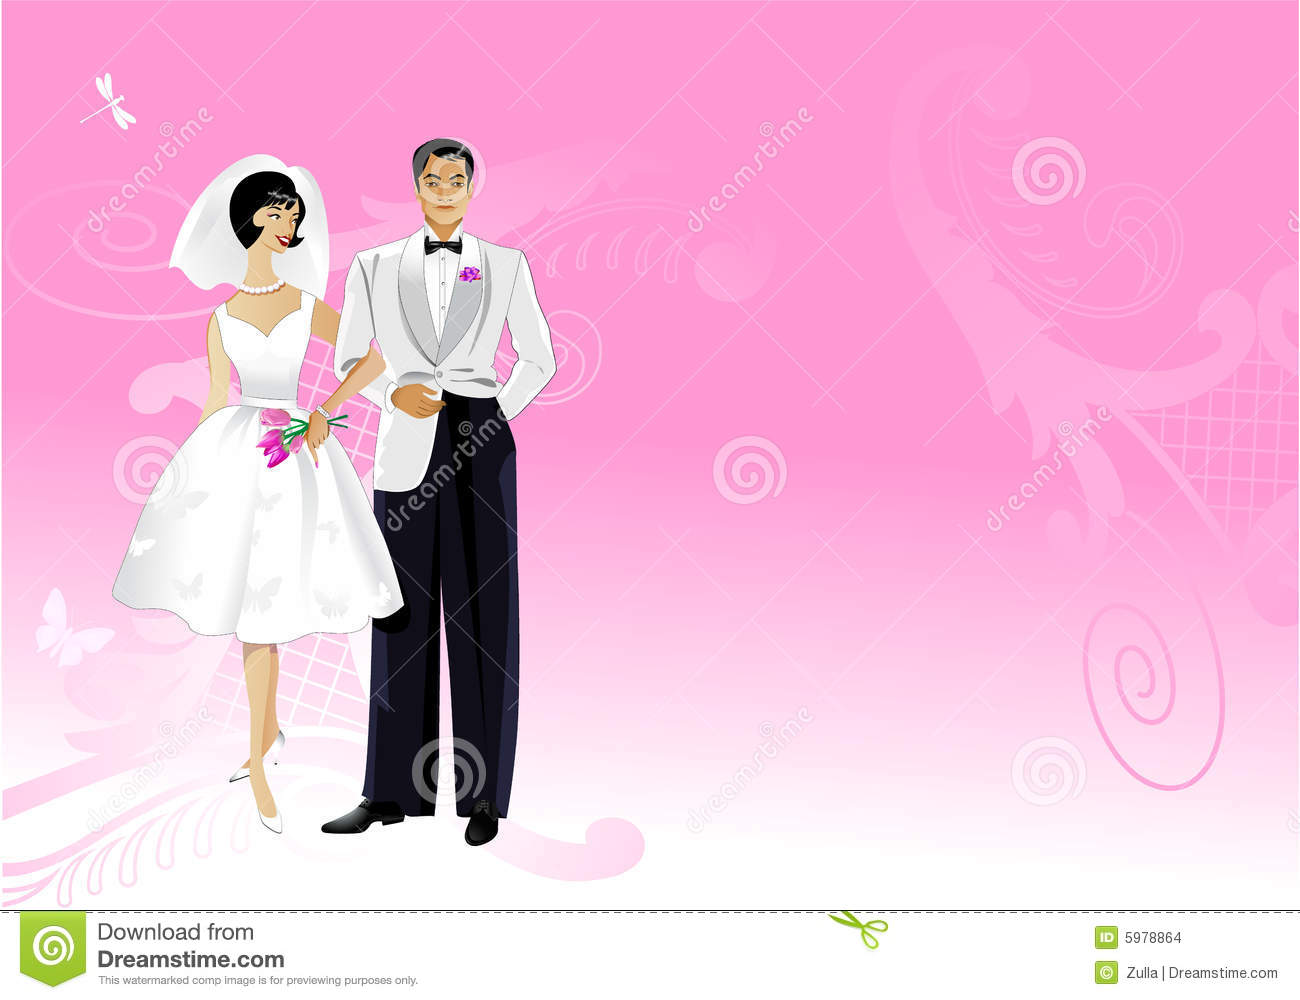 Wedding Card Stock Images - Image: 5978864